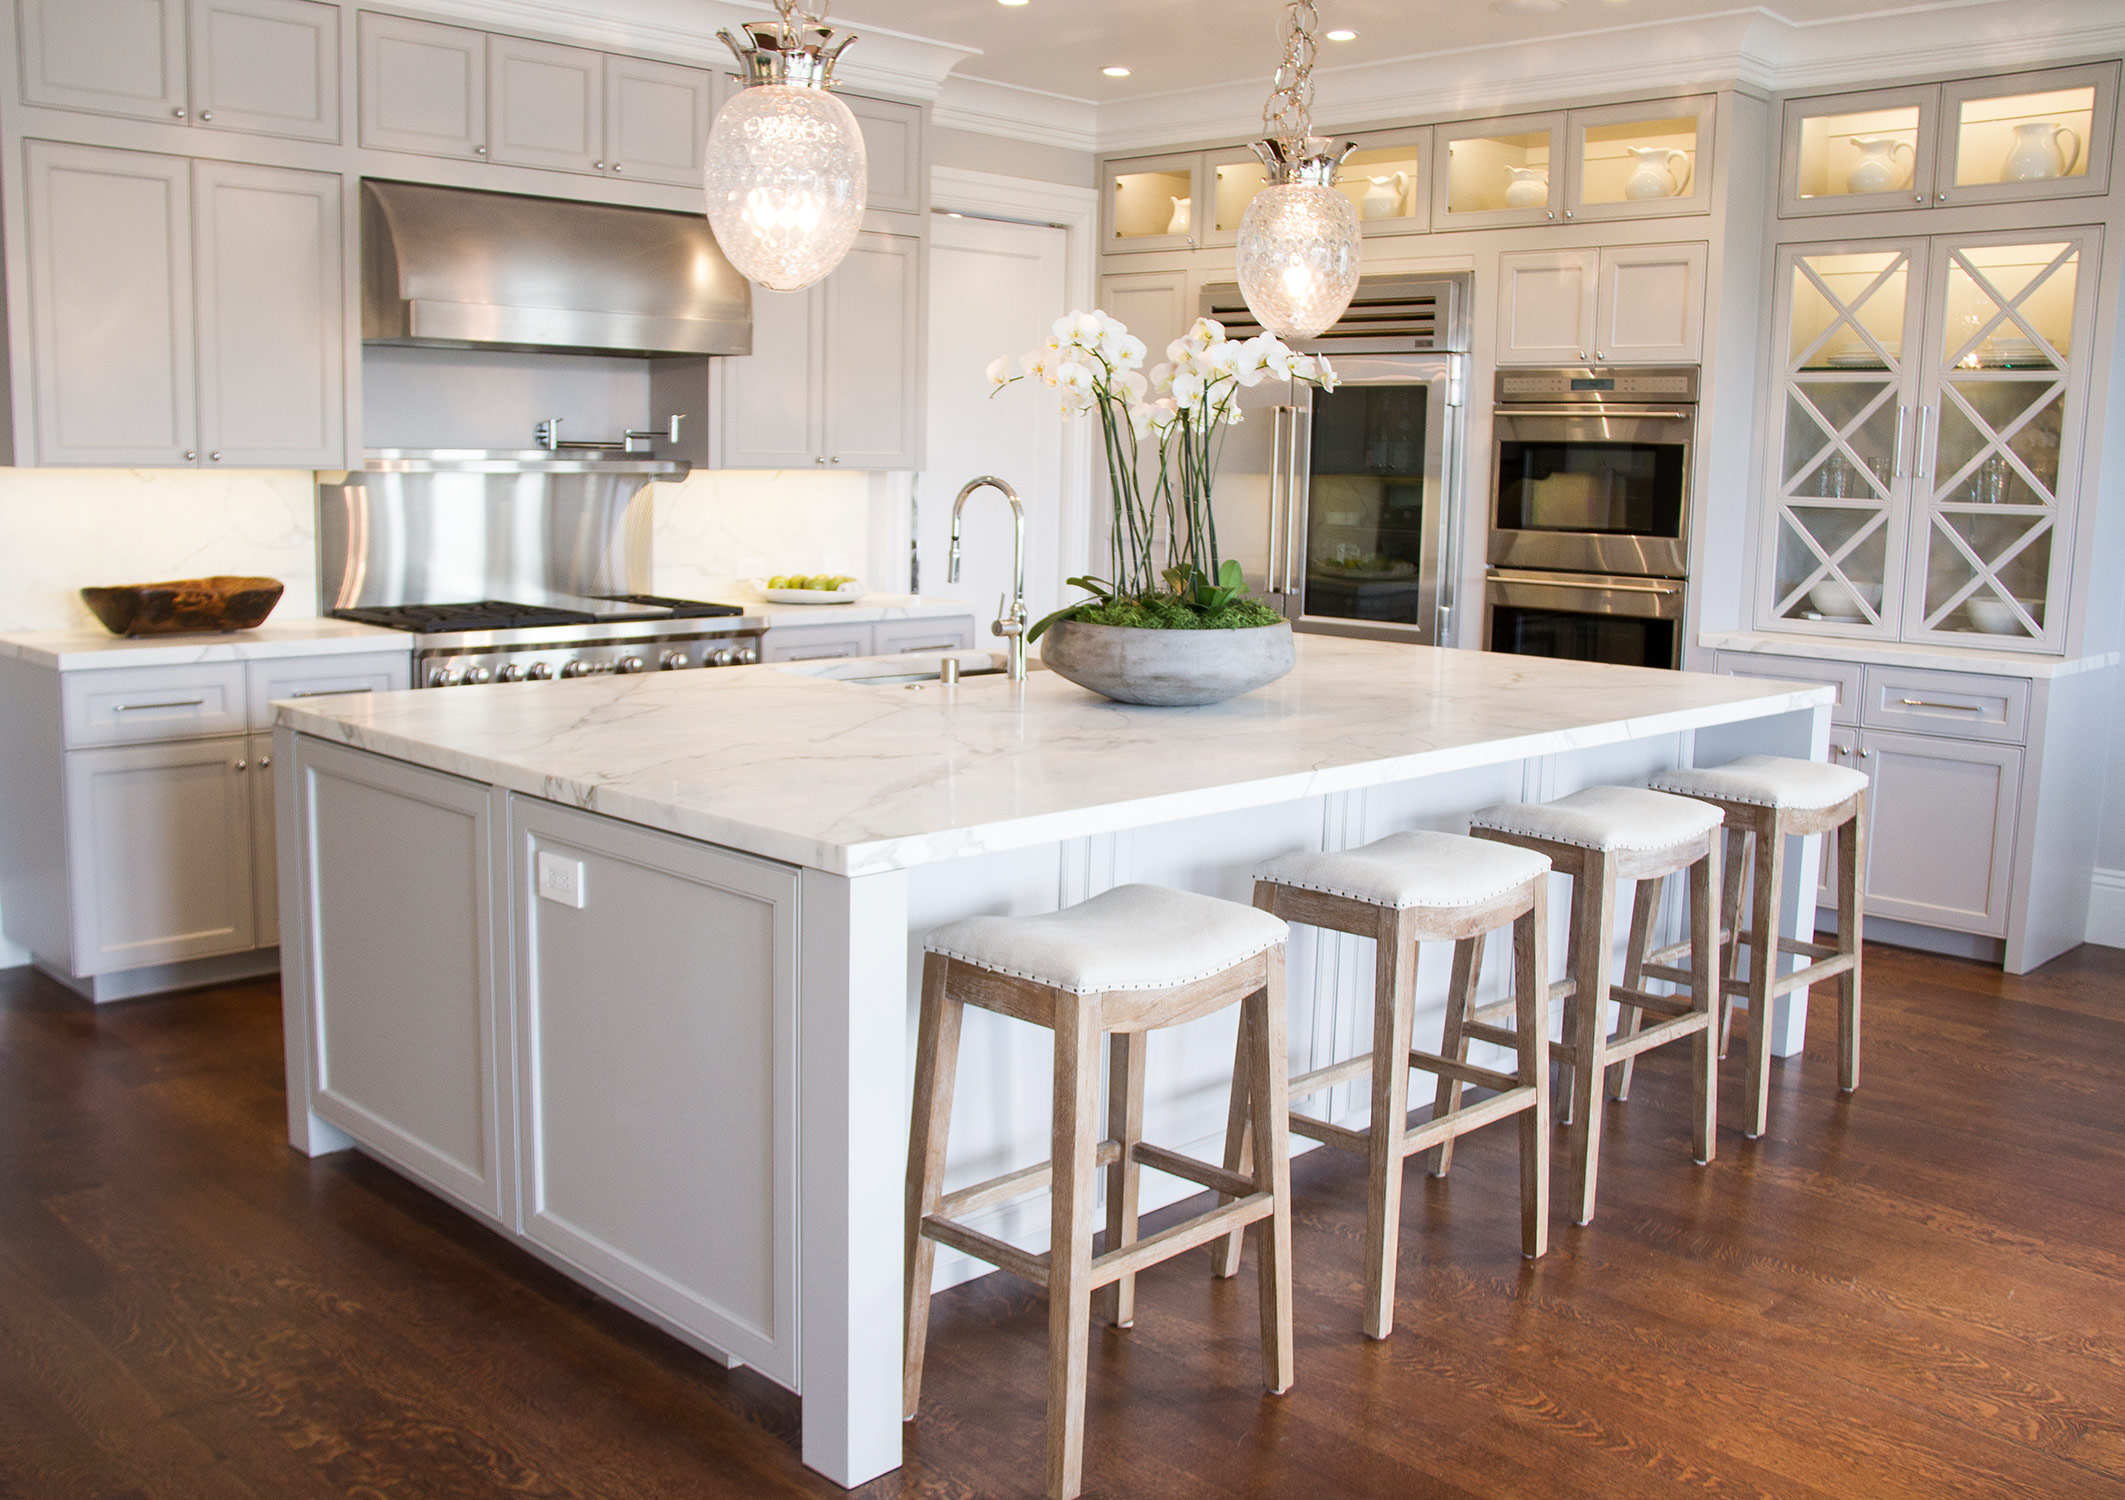 kitchen, simple, white, marble countertop, barstools, cabinets, glass cabinets, stainless steel, appliances, open layout,